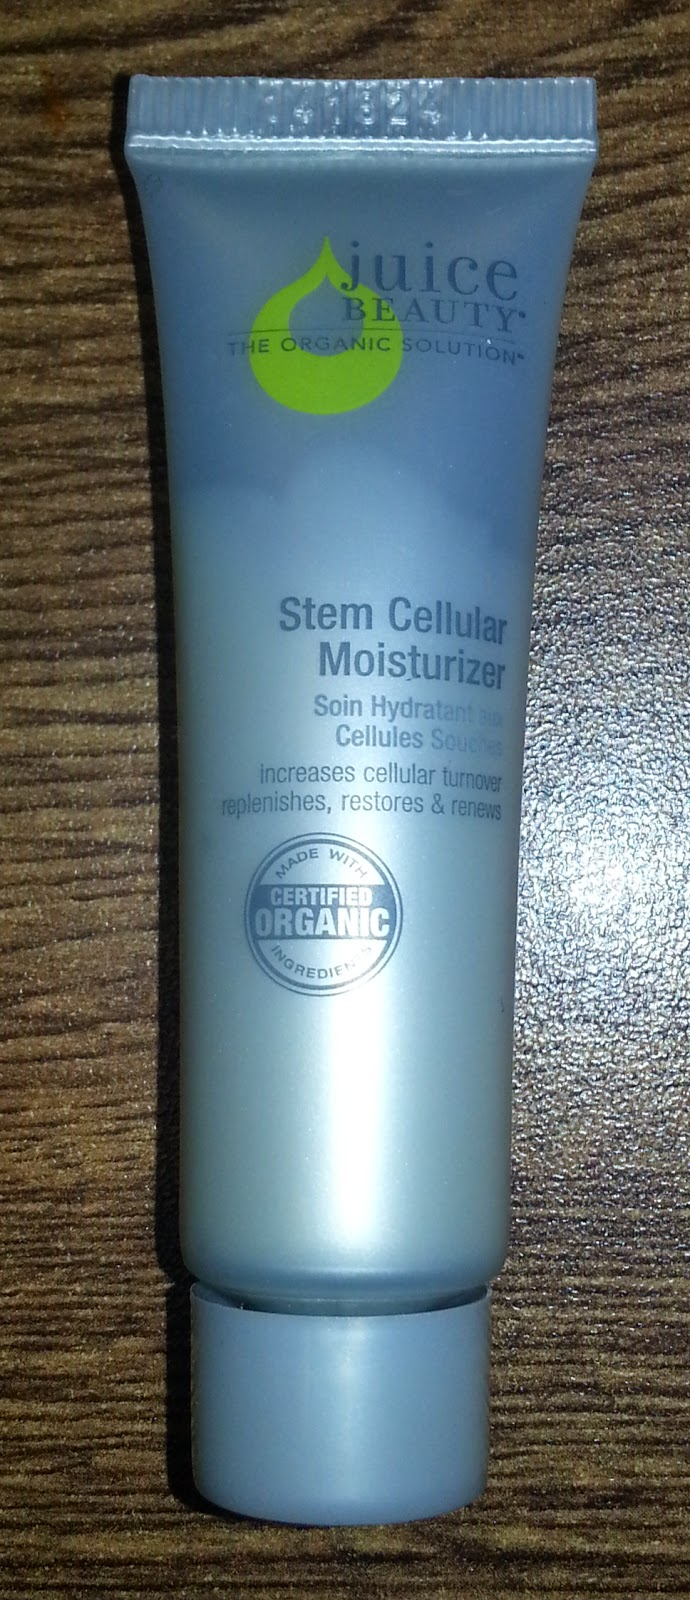 Juice Beauty Stem Cellular Moisturizer Deluxe Sample